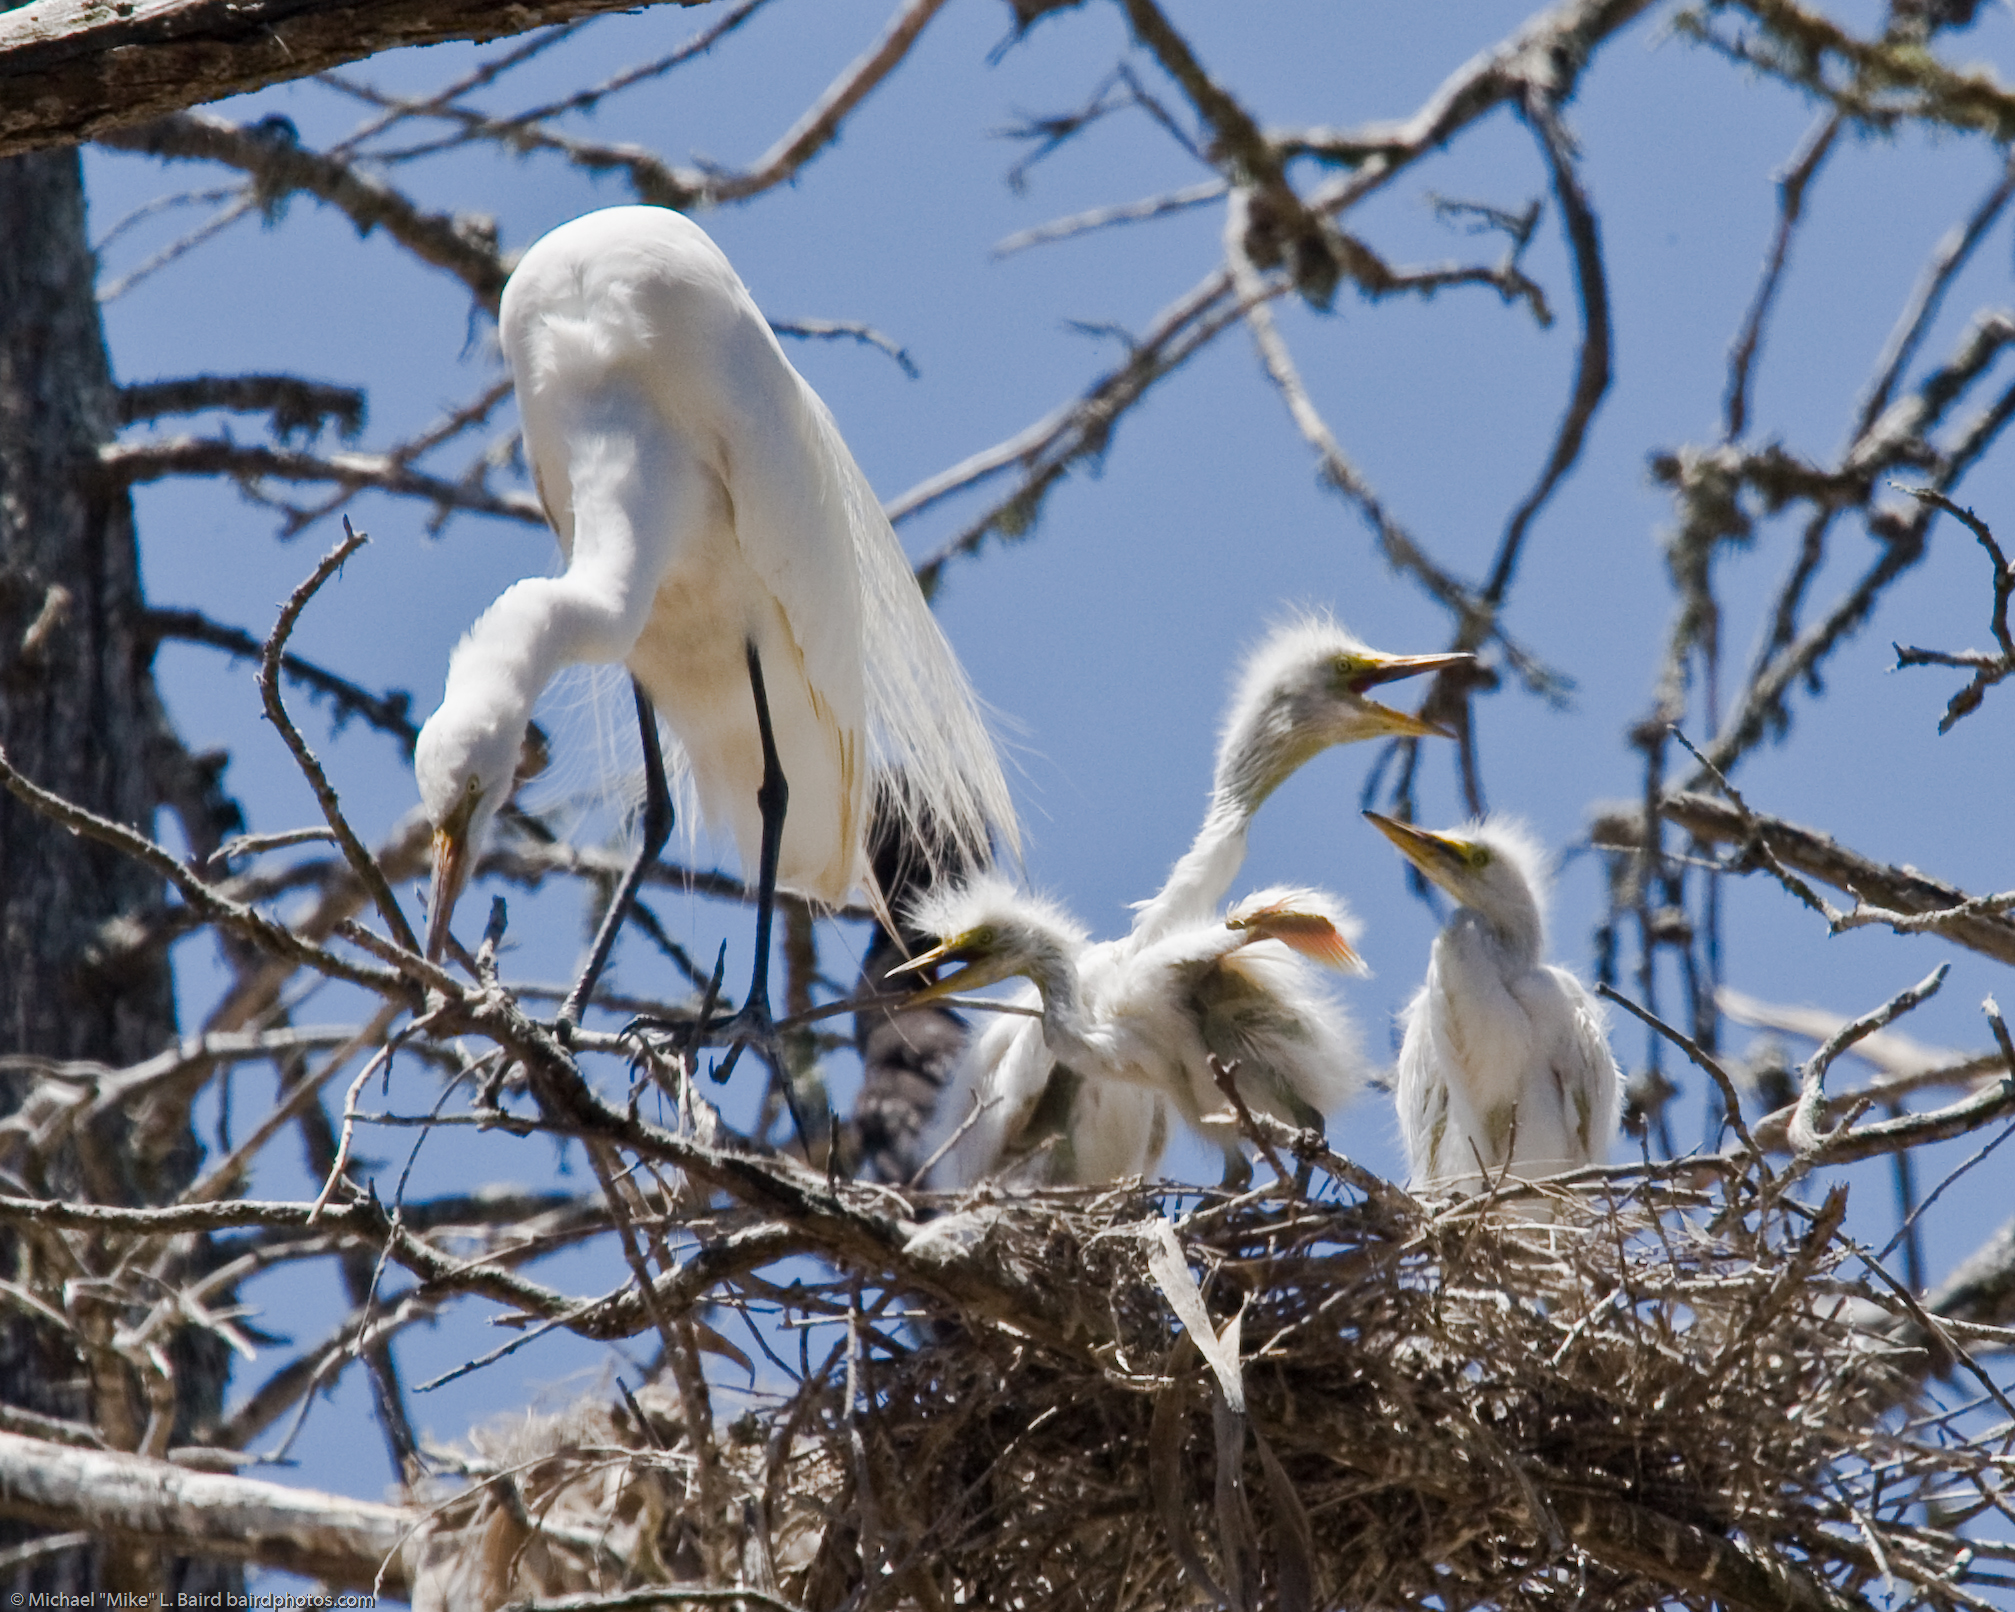 https://i1.wp.com/upload.wikimedia.org/wikipedia/commons/6/64/Great_Egret_%28Ardea_alba%29_chicks_with_parent_in_nest%2C_Morro_Bay_H_%282594536724%29.jpg